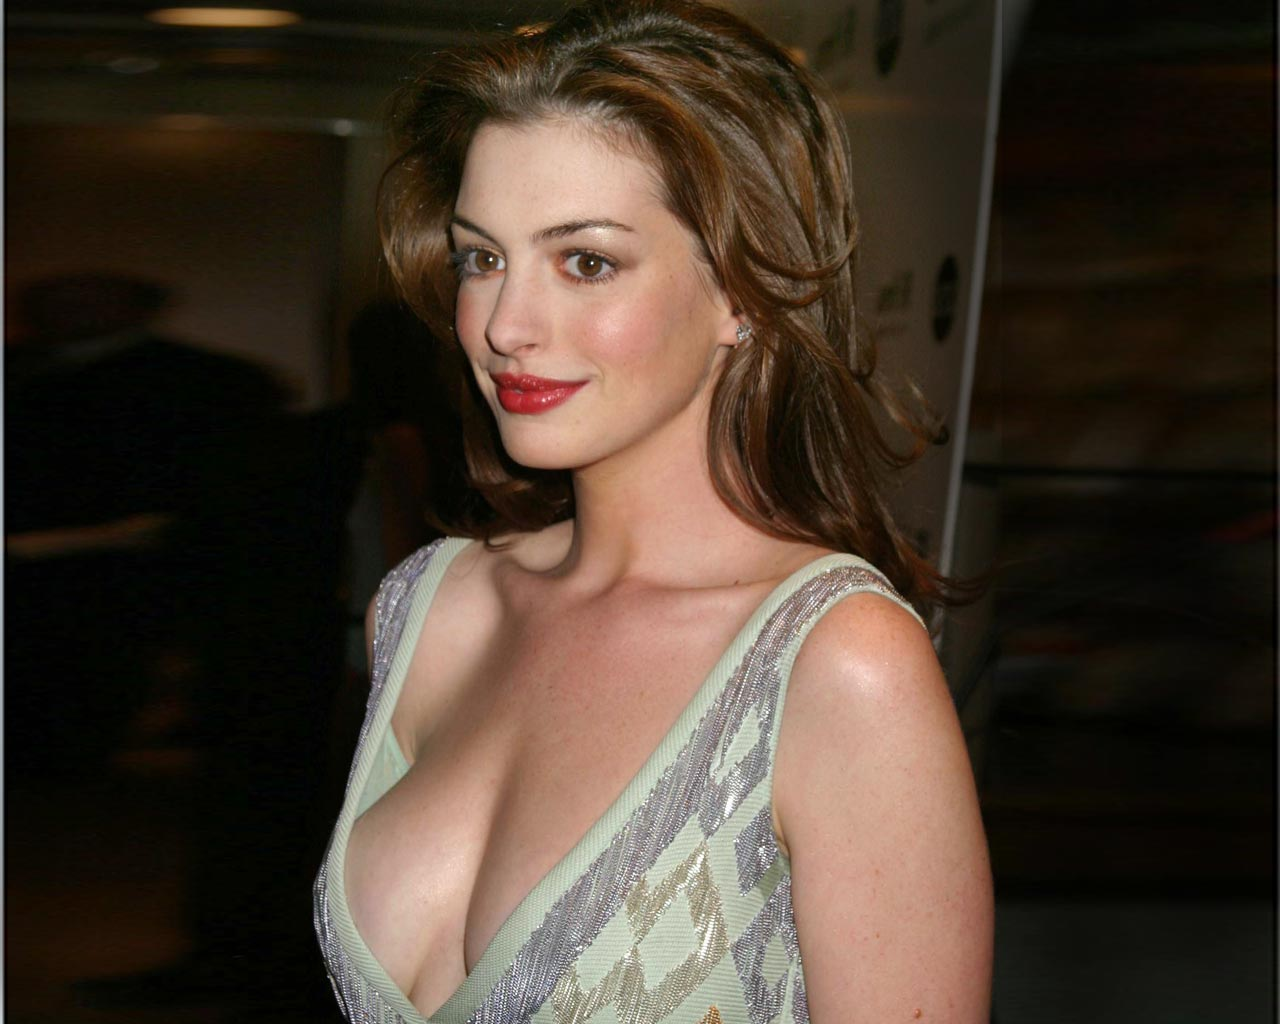 Regret, Anne hathaway actress apologise, but